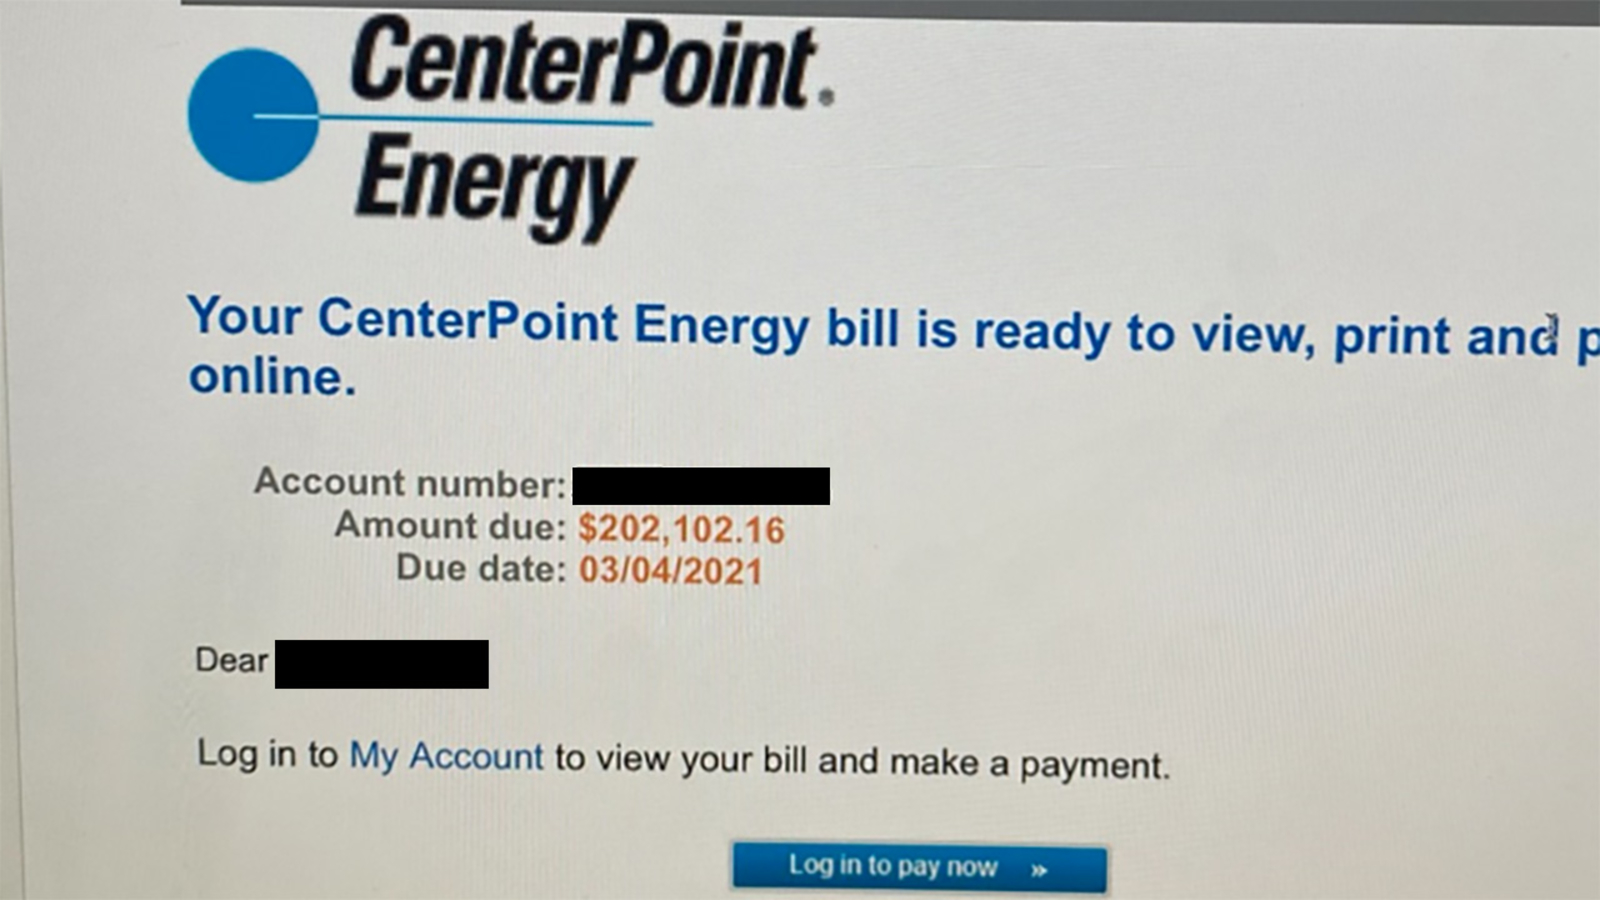 CenterPoint warns customers of incorrect email claiming they owe thousands of dollars - KTRK-TV